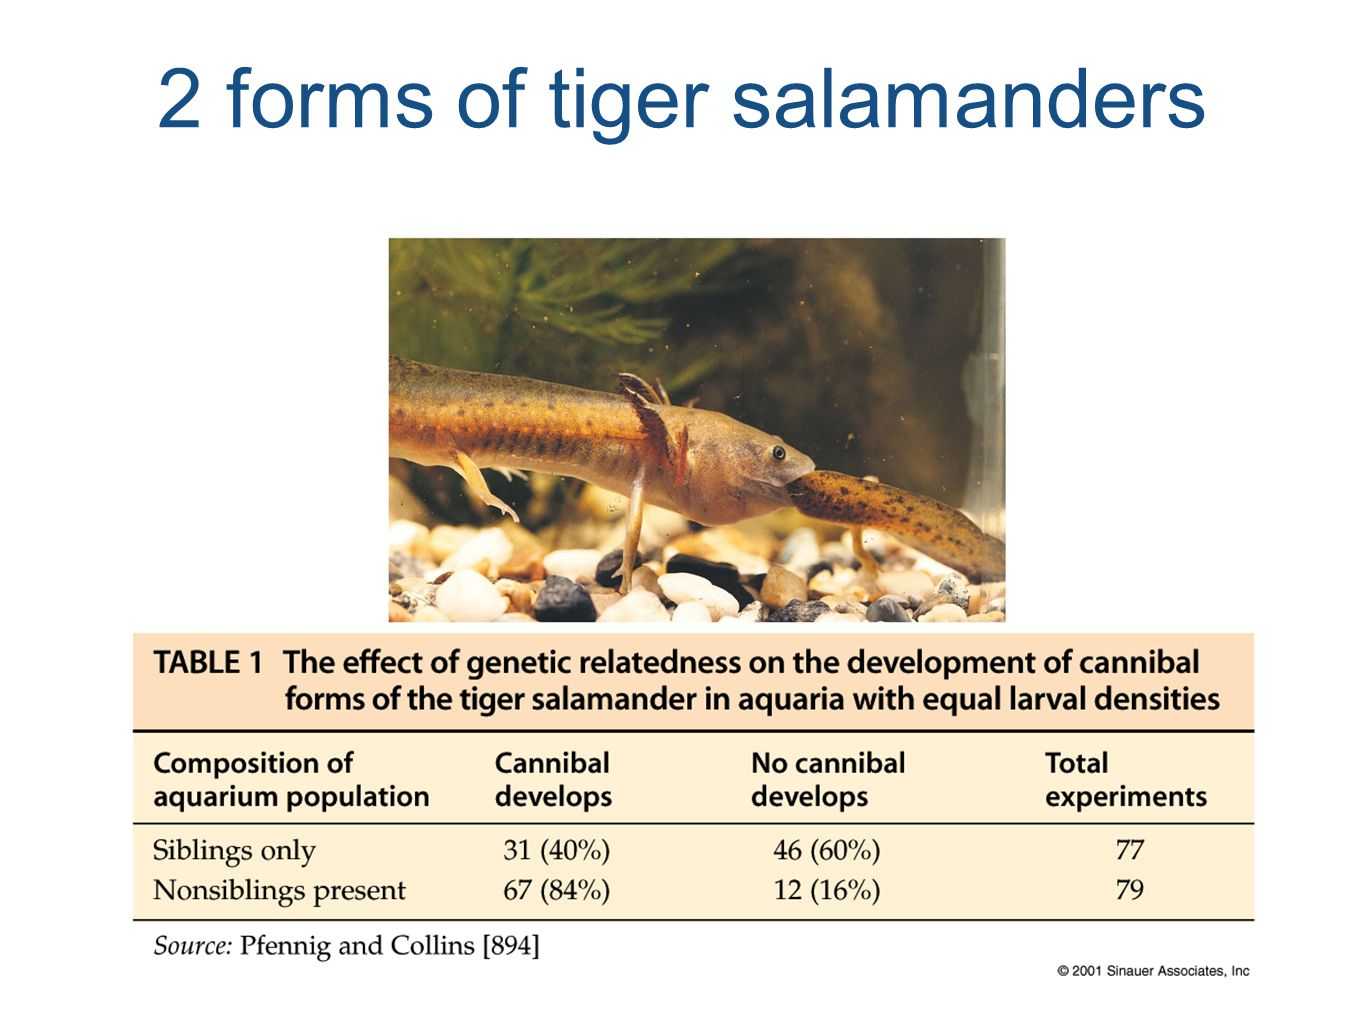 2 forms of tiger salamanders